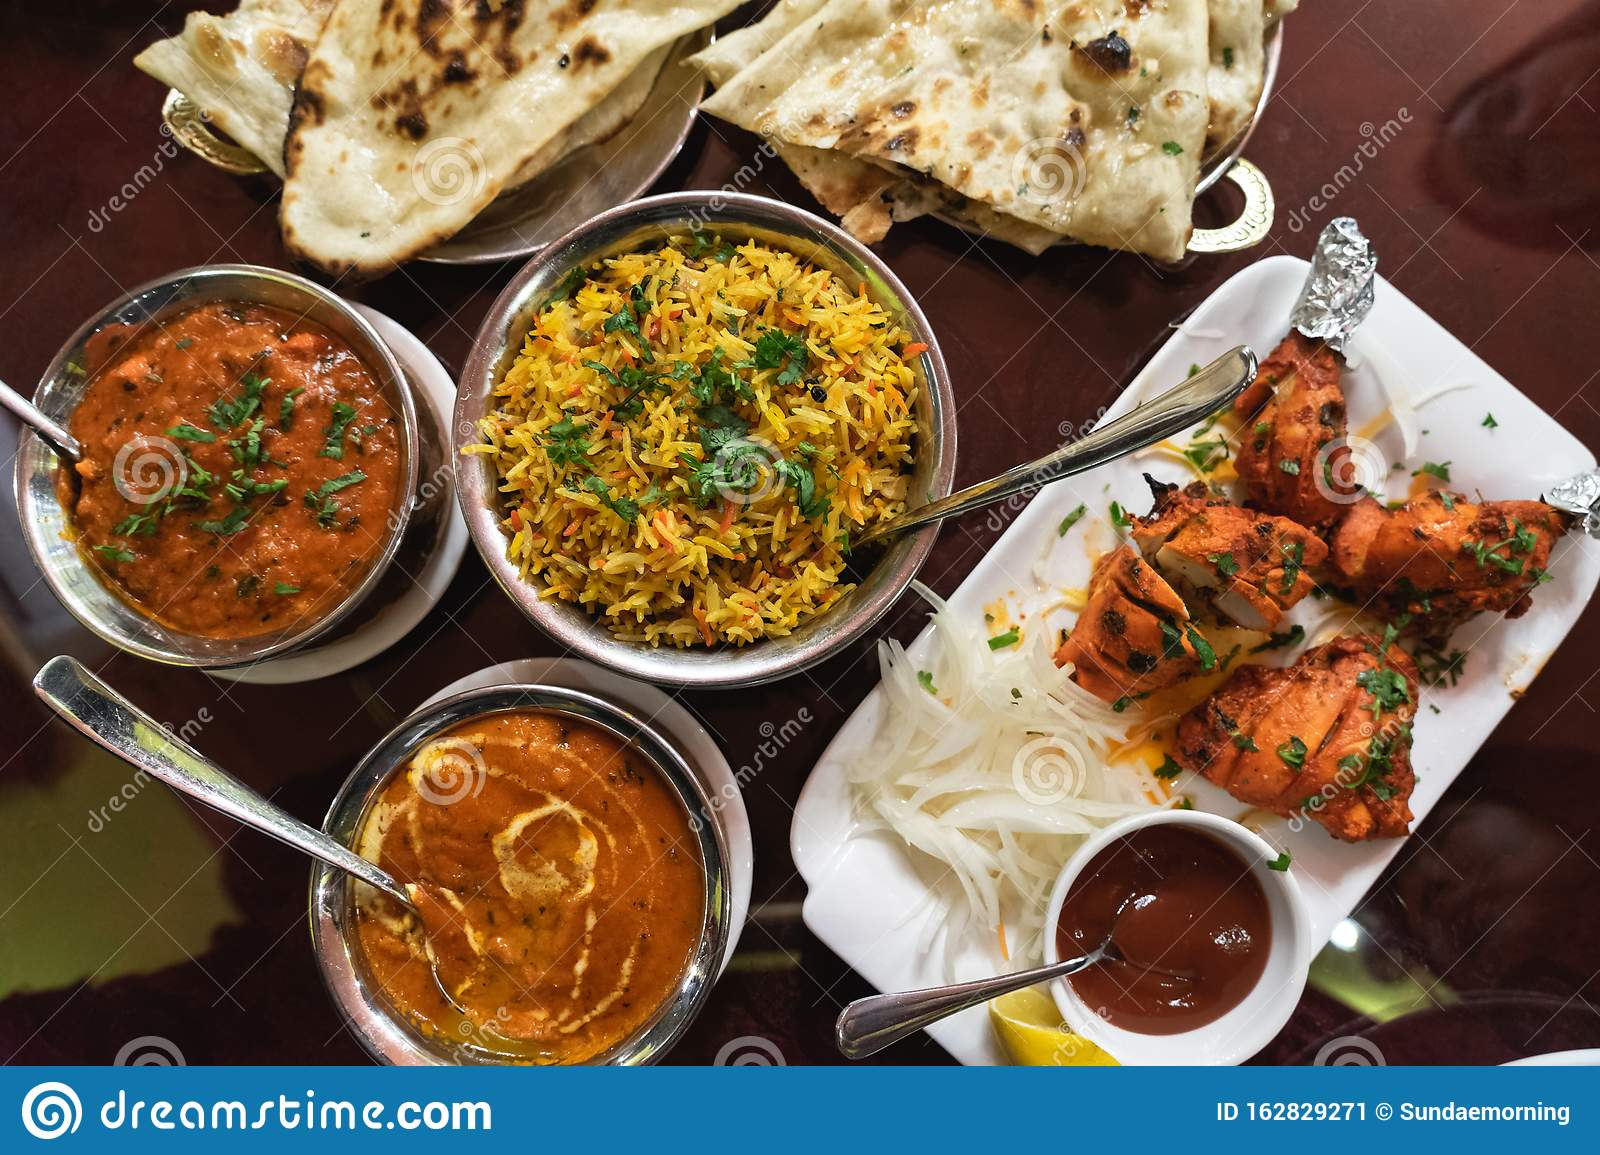 Assortment Of Indian Dishes For Dinner Butter Chicken Tikka Masala Rice And Naan Stock Image Image Of Cooking Children 162829271